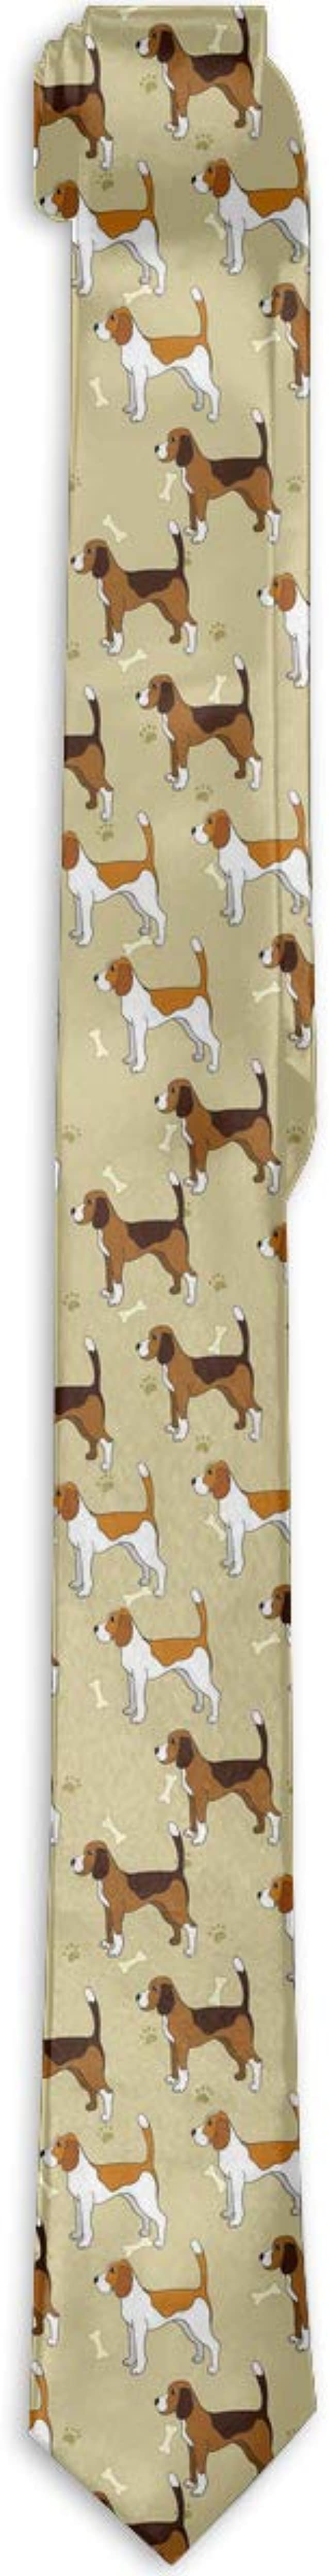 Slim Mens Funny Fashion Necktie Beagle Dog Durable Polyester Ties Formal Casual For Party Wedding Neck Tie